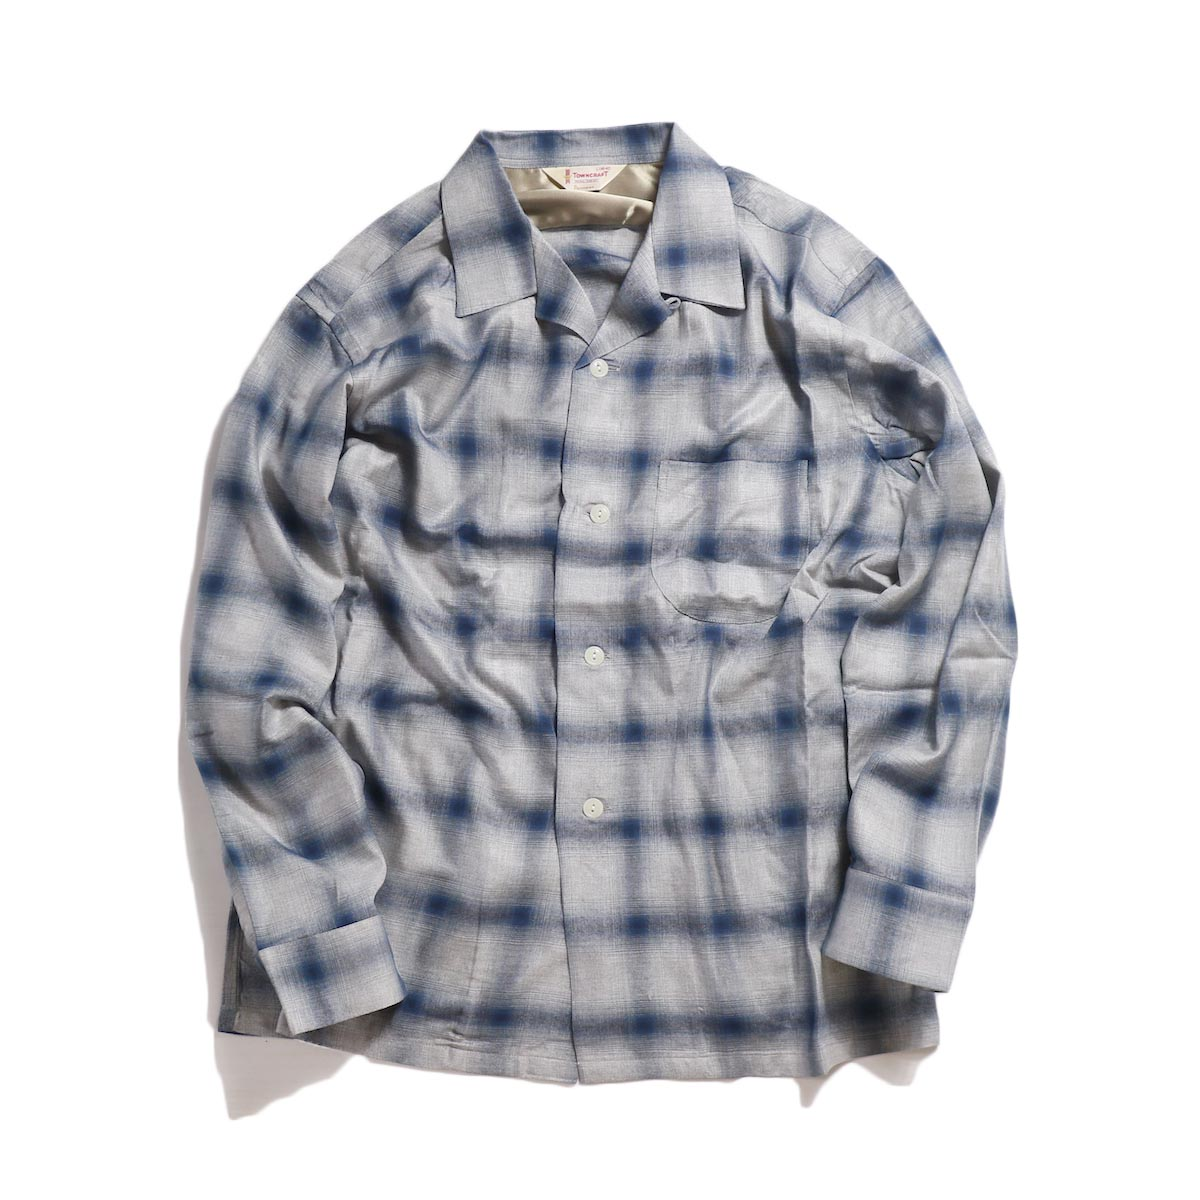 TOWN CRAFT / OMBLE OPEN SHIRTS -Navy